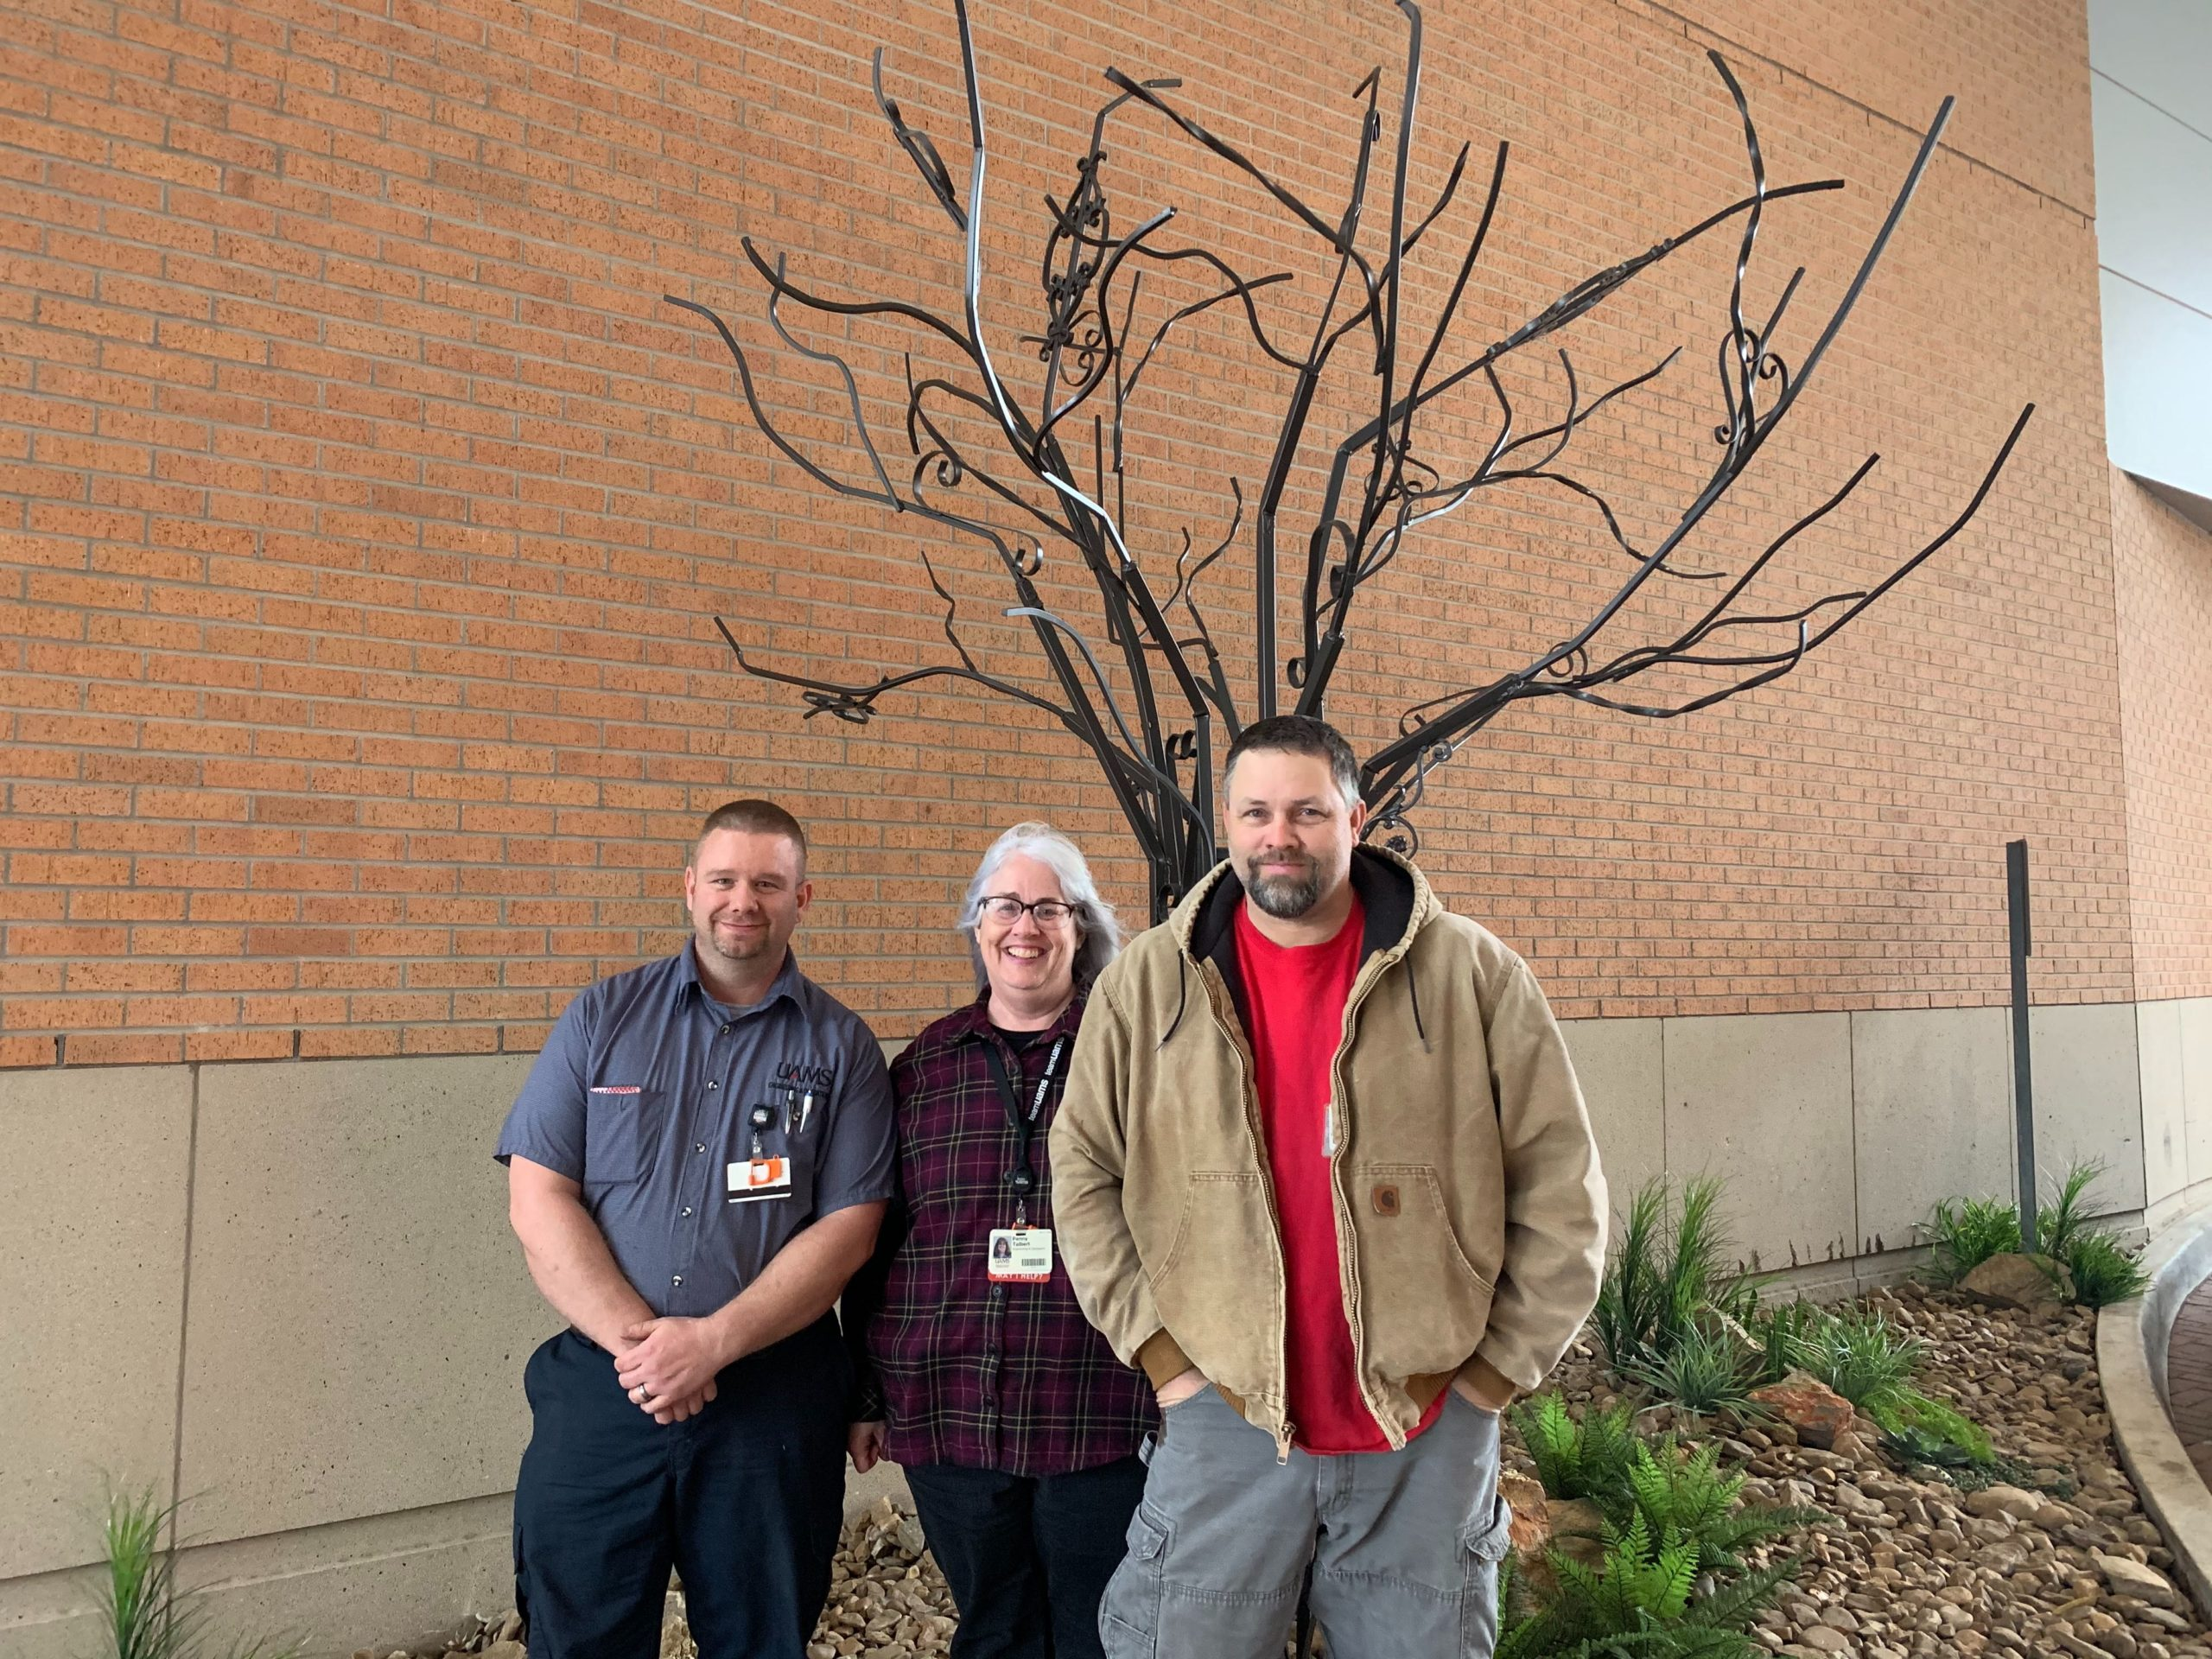 Eric Hale, Penny Talbert and Kenneth Bailey created this tree sculpture from wrought iron saved from the homes along Pine and Cedar.